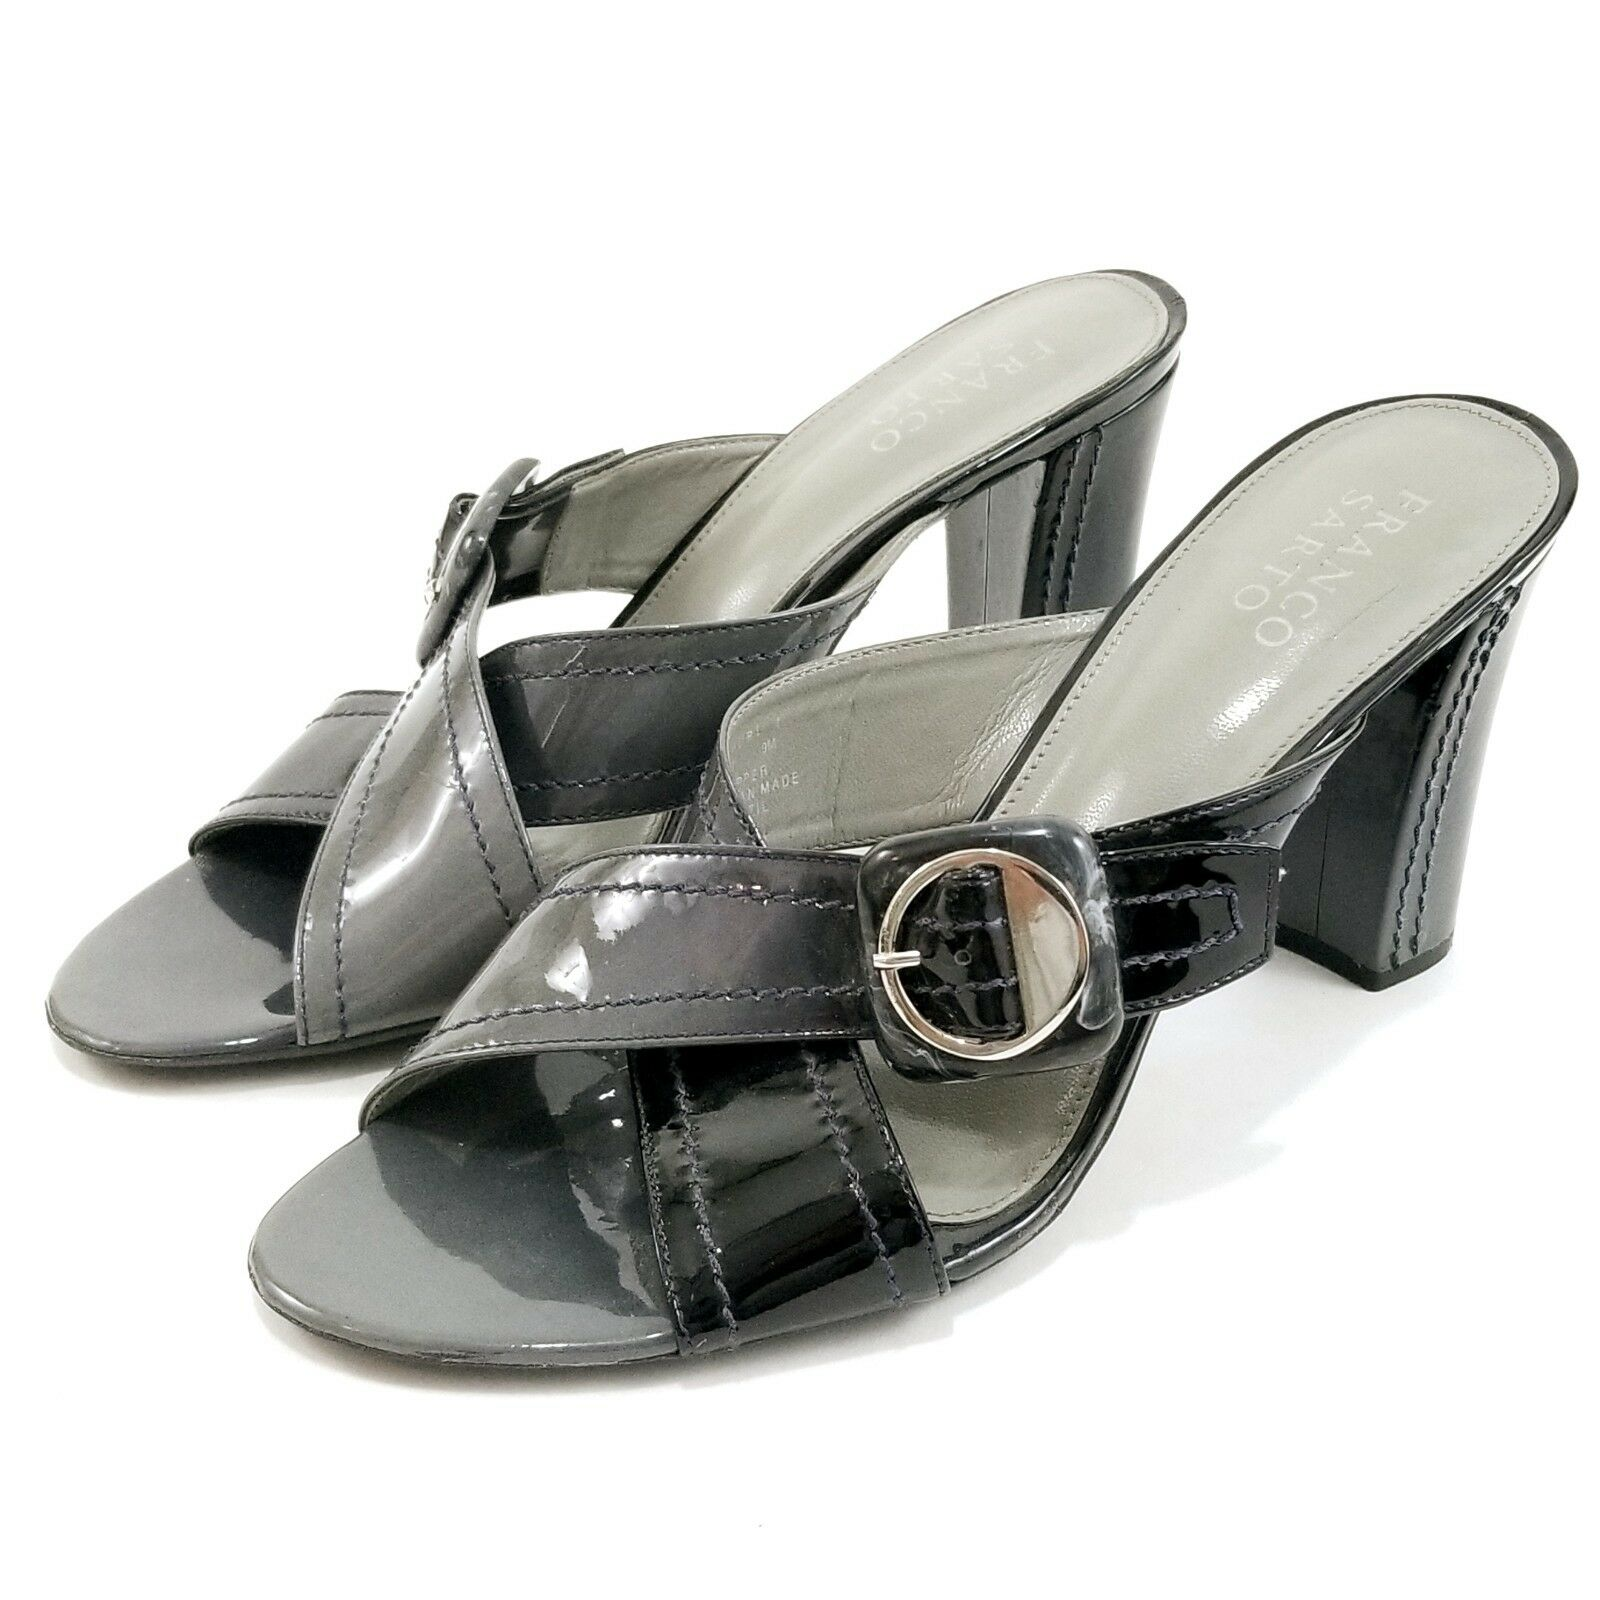 Gentleman/Lady Franco Sarto Black Gray High Slide Heel Sandals Open Toe Slide High Sz 9 M Leather Buckle fashion Cheaper than the price Explosive good goods GA1218 71f71e